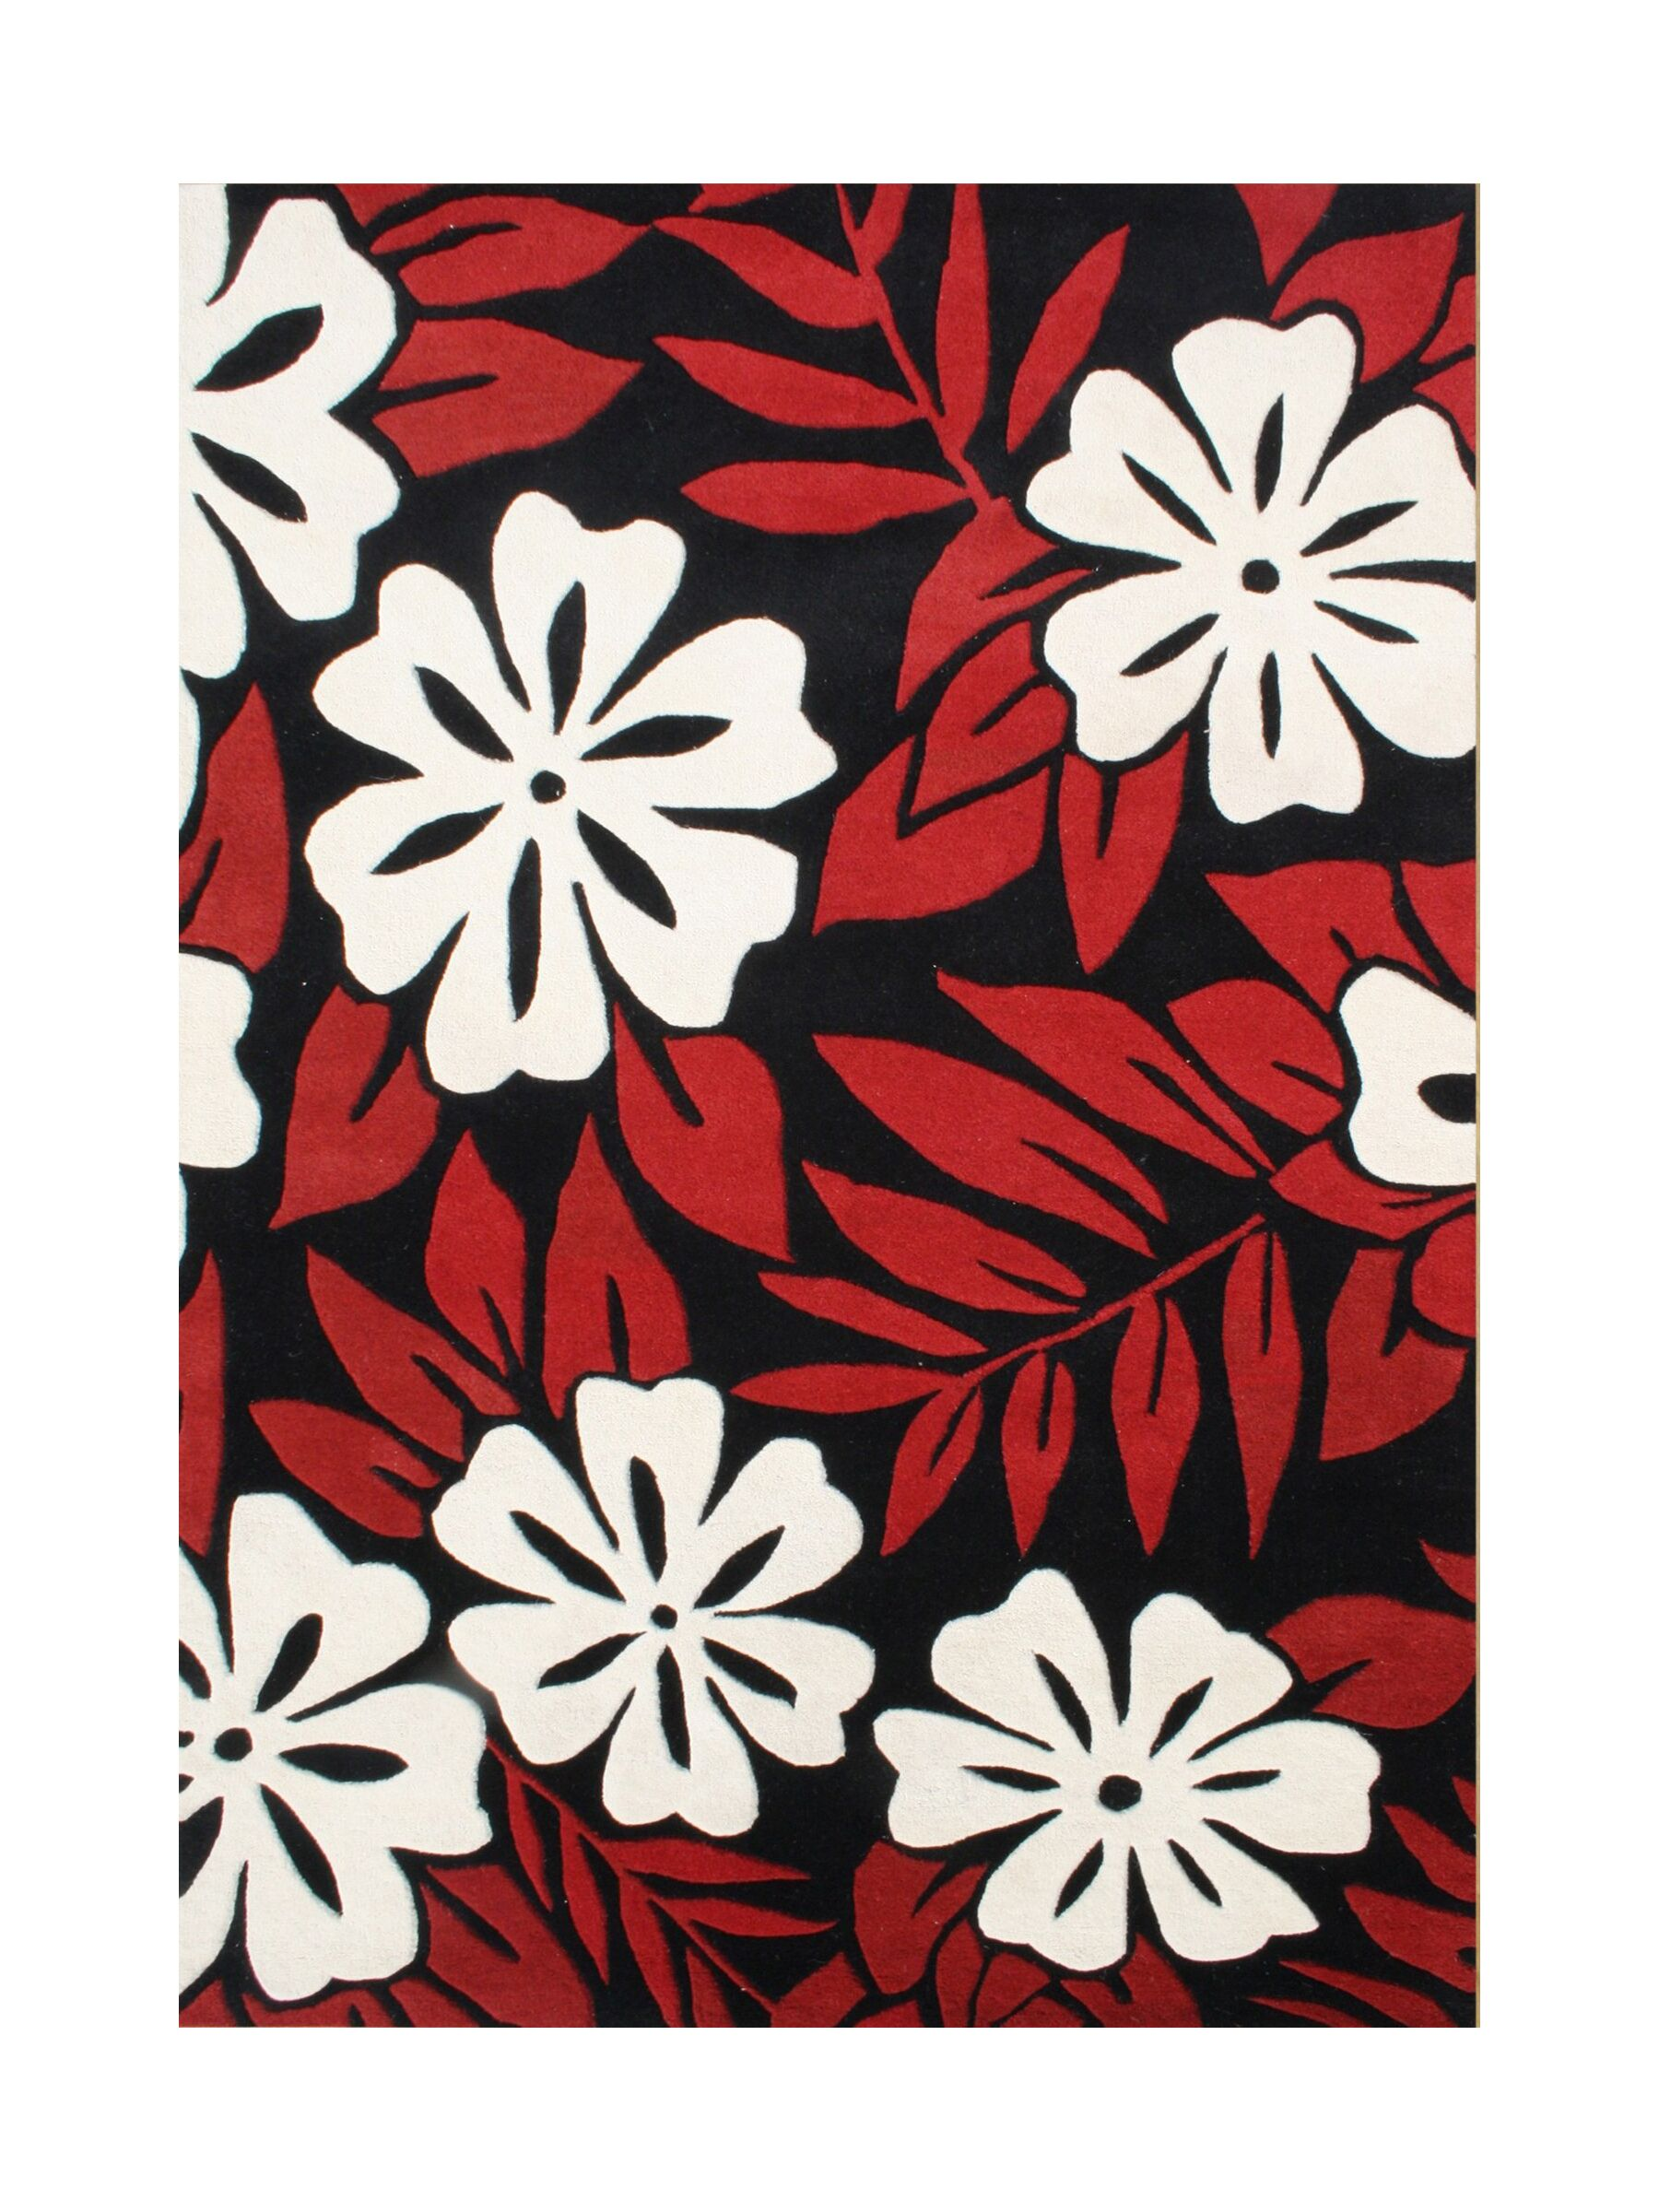 Alonzo Hand-Tufted Poppy Red Area Rug Rug Size: 8' x 10'